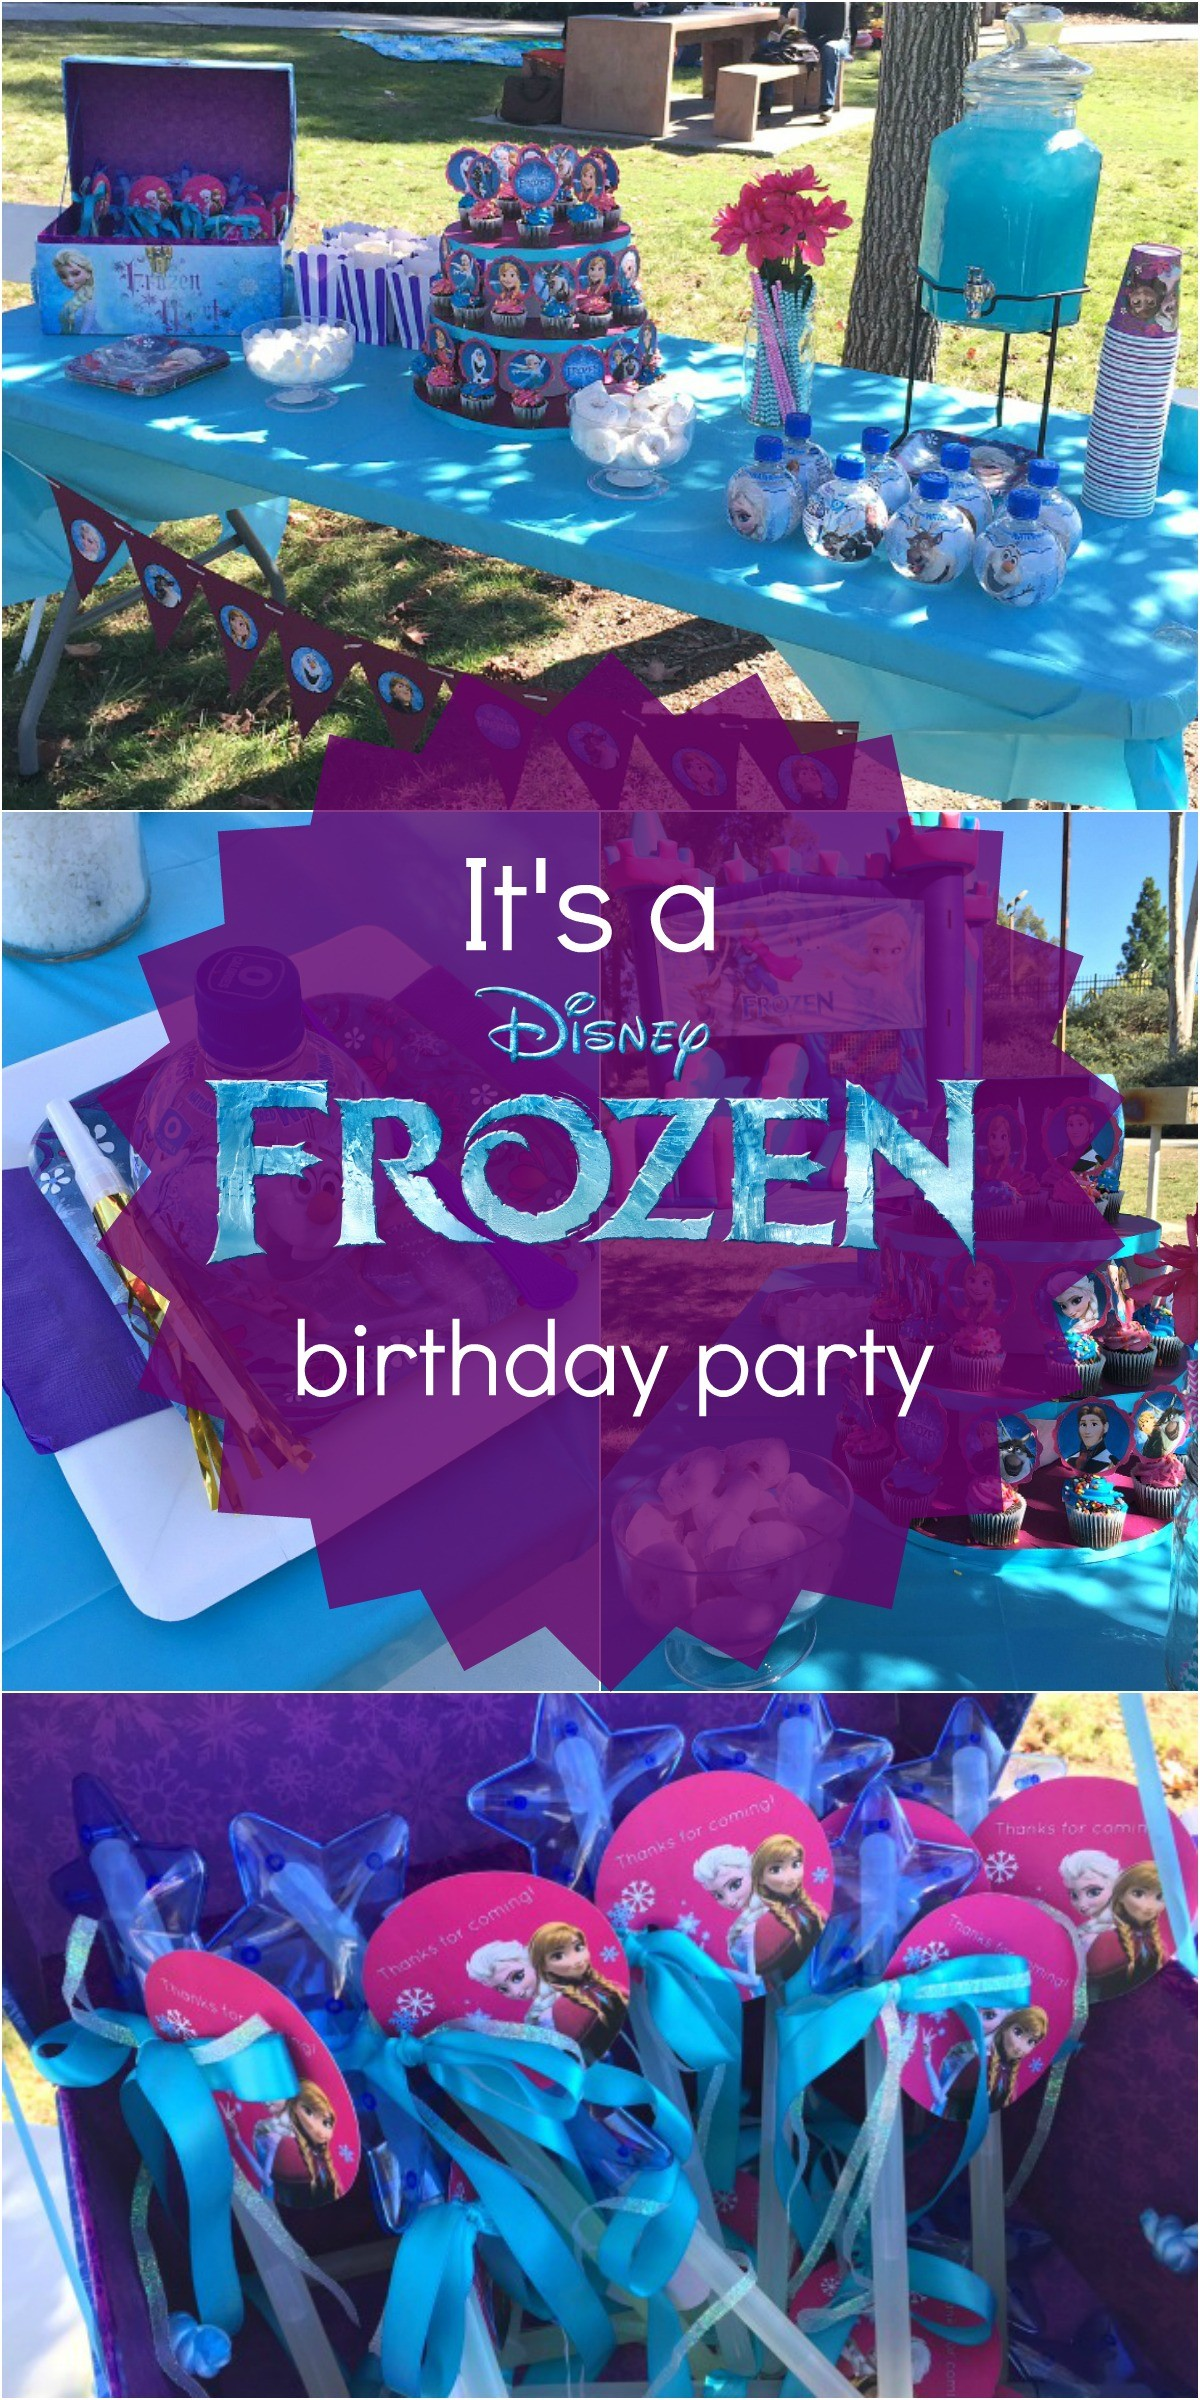 Disney's Frozen Birthday Party Ideas - Purple, Pink and Blue Decor